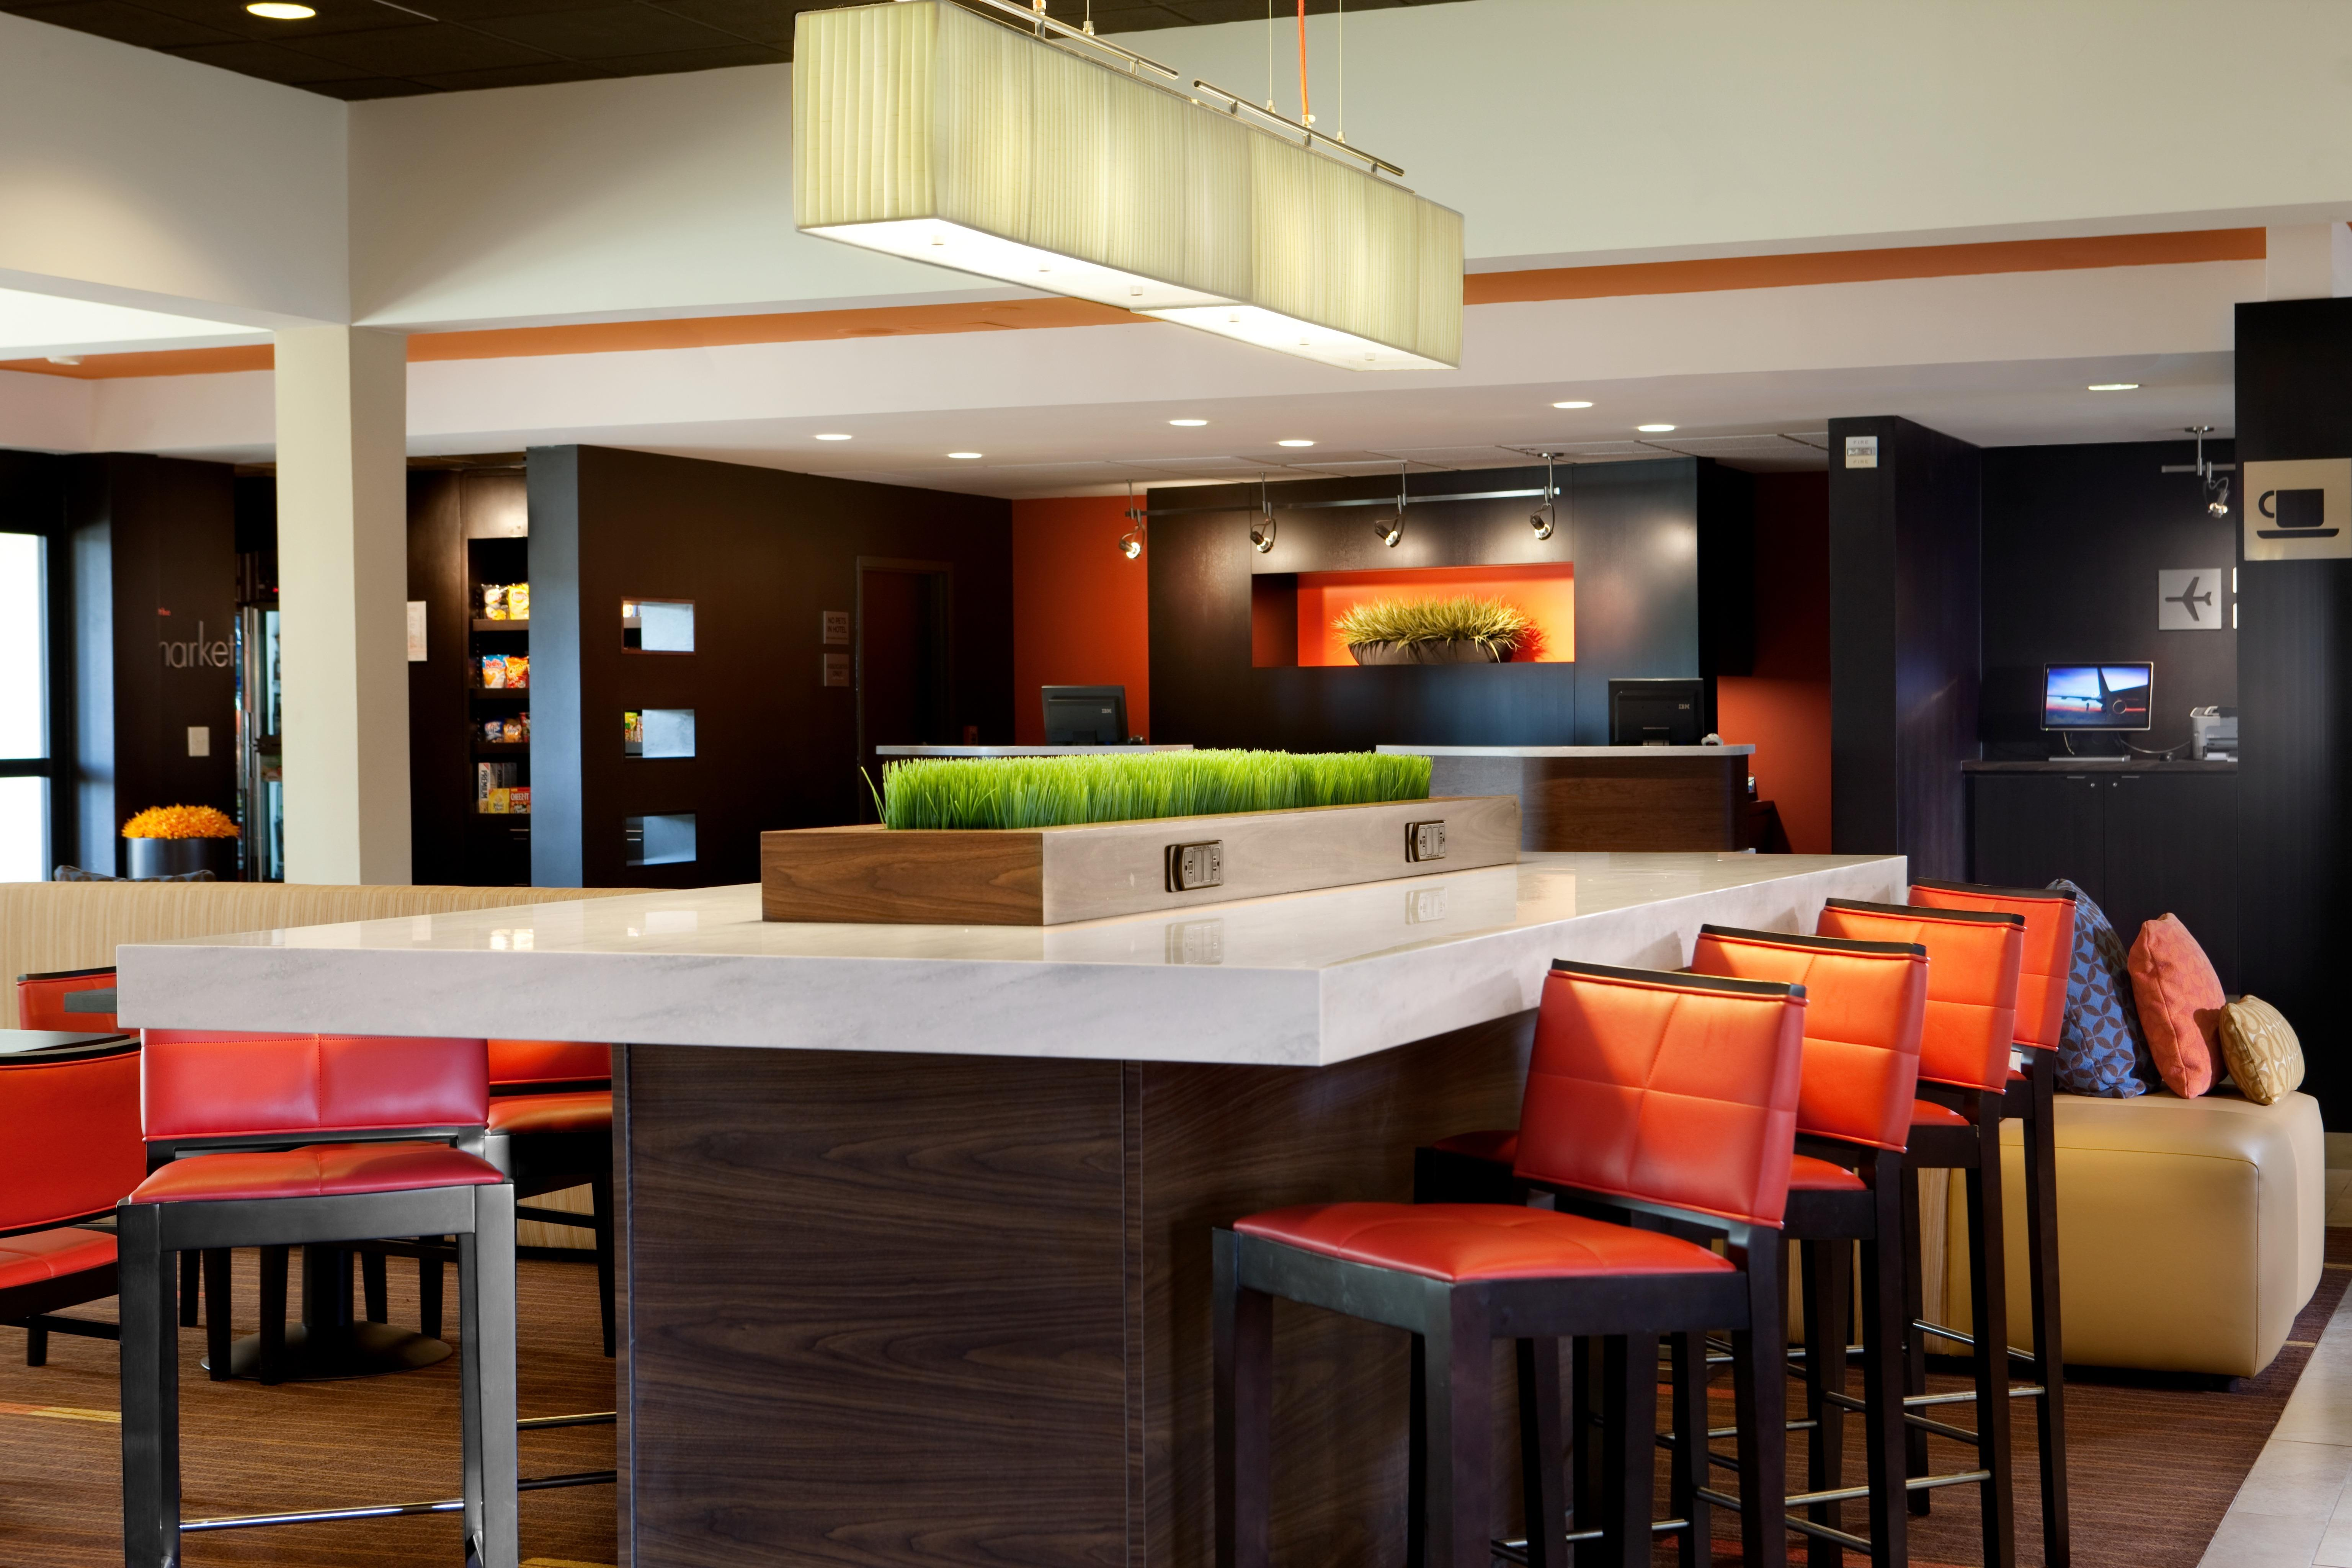 Courtyard by Marriott Fort Worth University Drive image 14